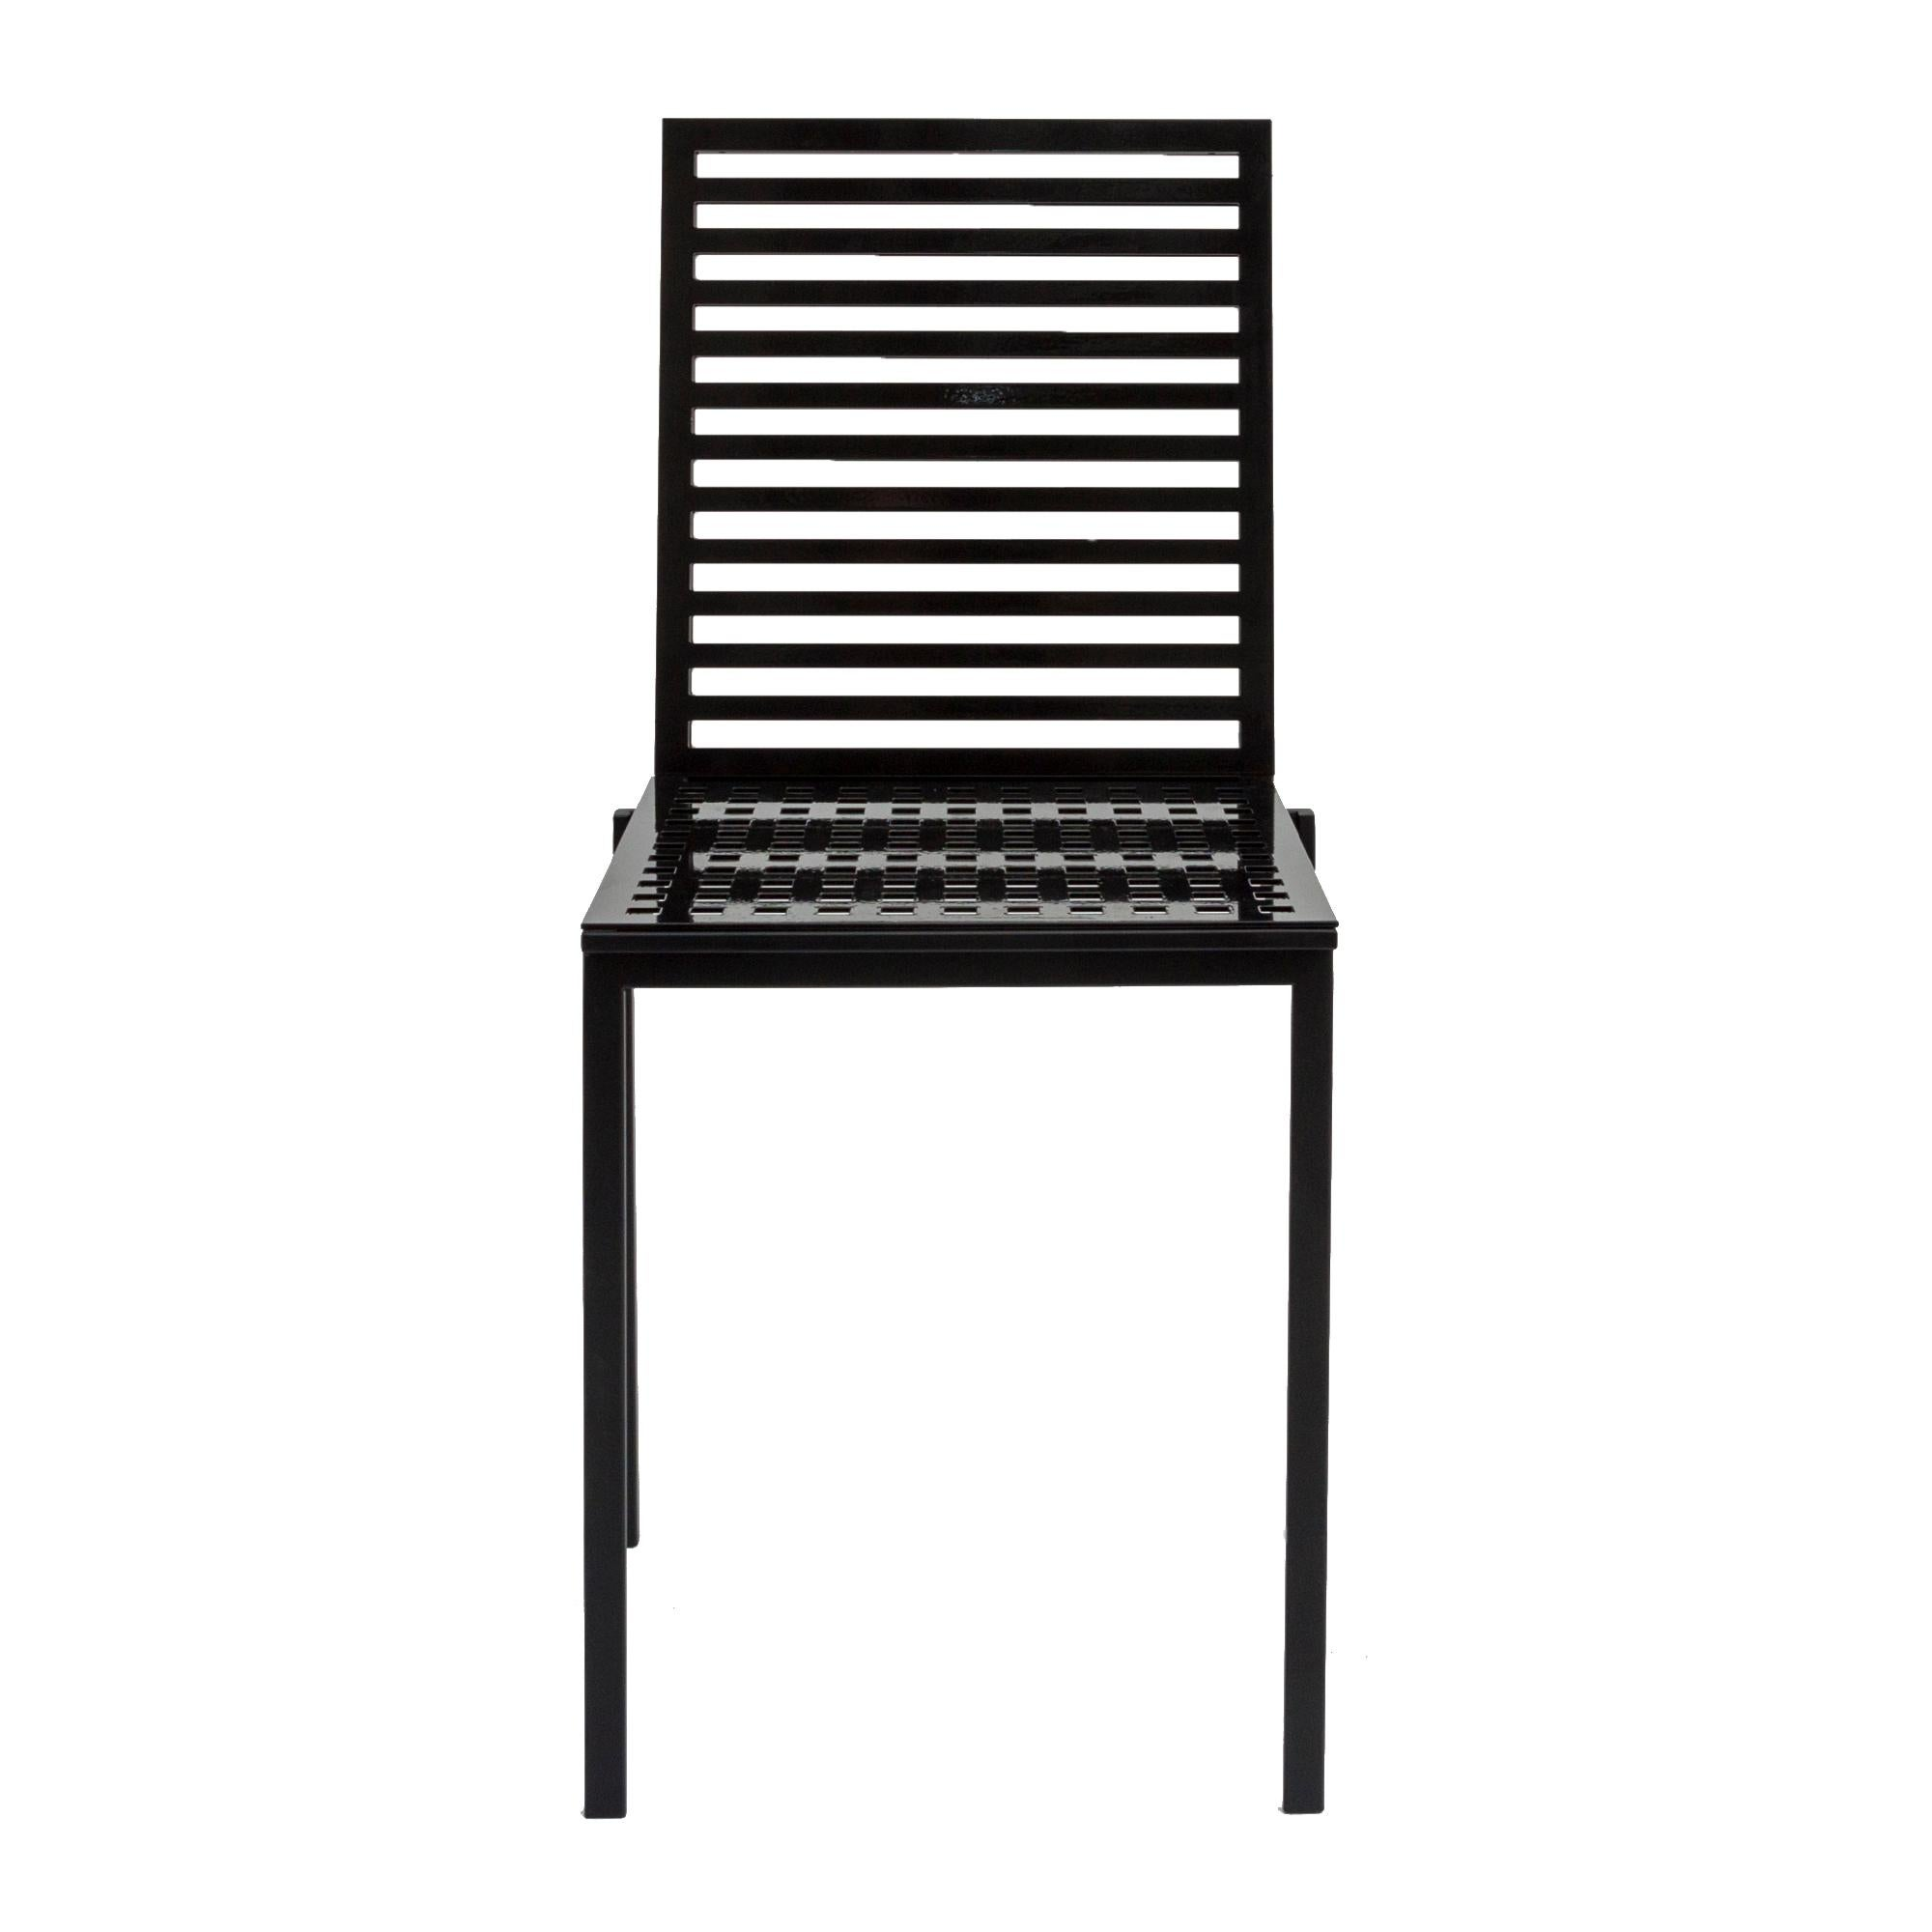 Contemporary Tanit Classic Chair in Black Colored Aluminum